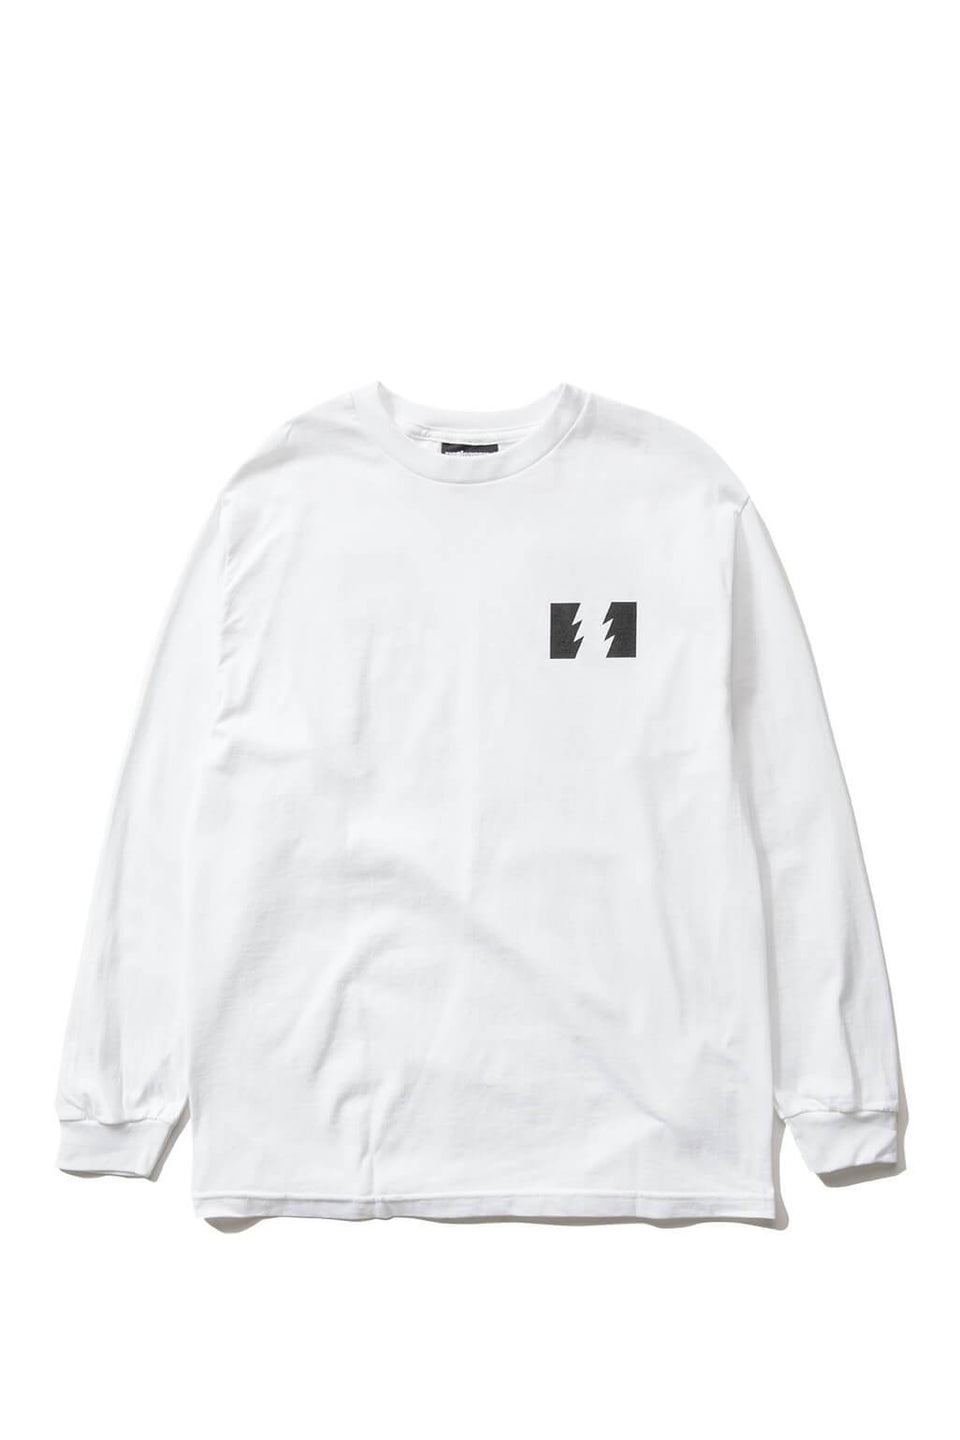 The Hundreds Forever Wildfire Longsleeve Shirt White Front